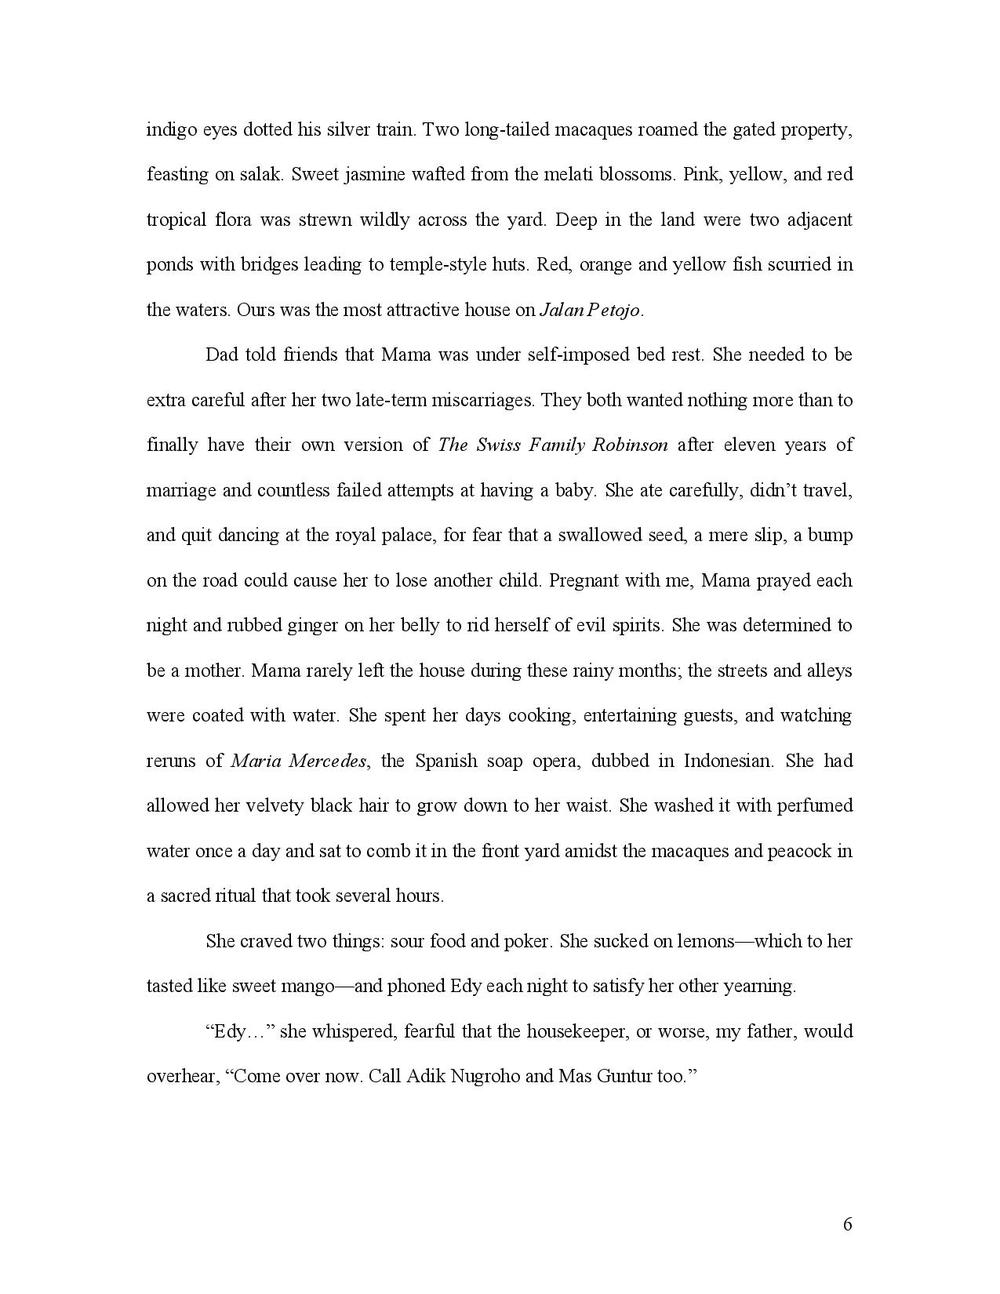 In The Cards_edit_excerpt-page-006.jpg